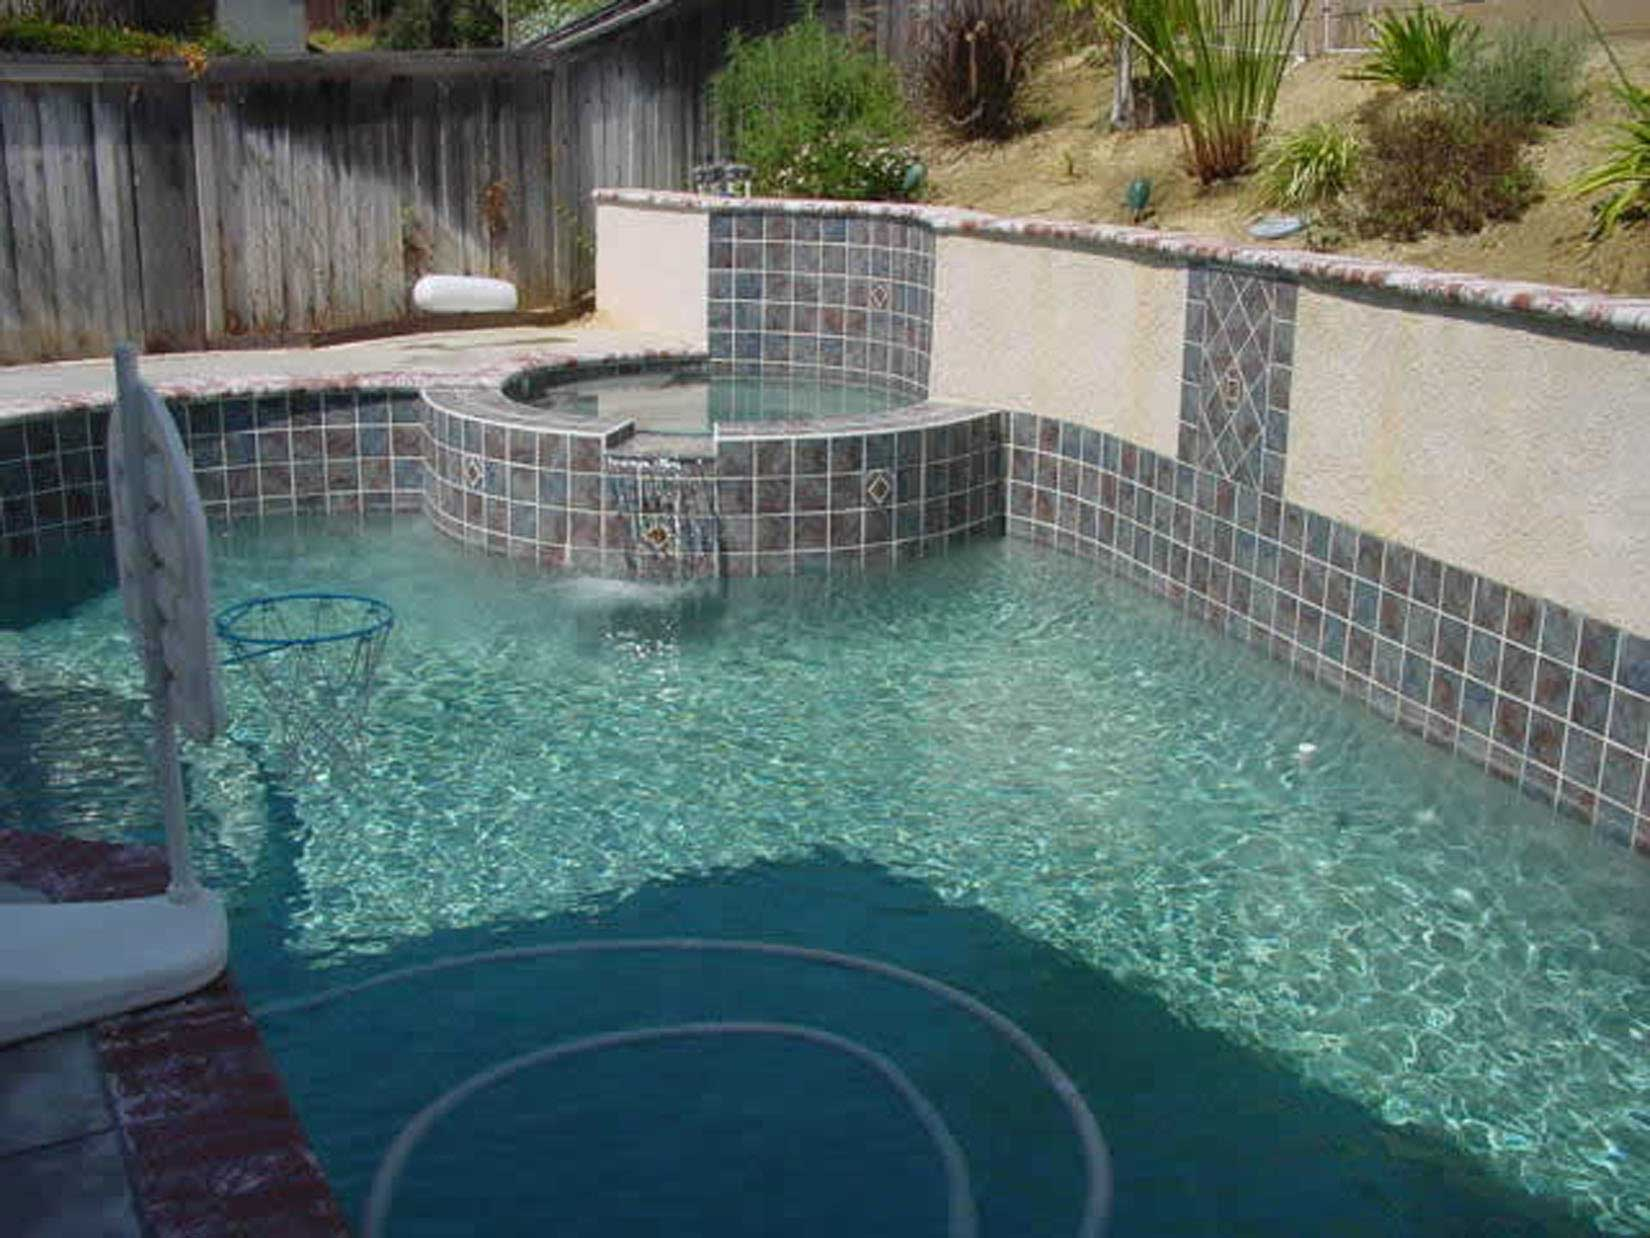 How to build your own pools spas hot tubs how to build Build your own salon